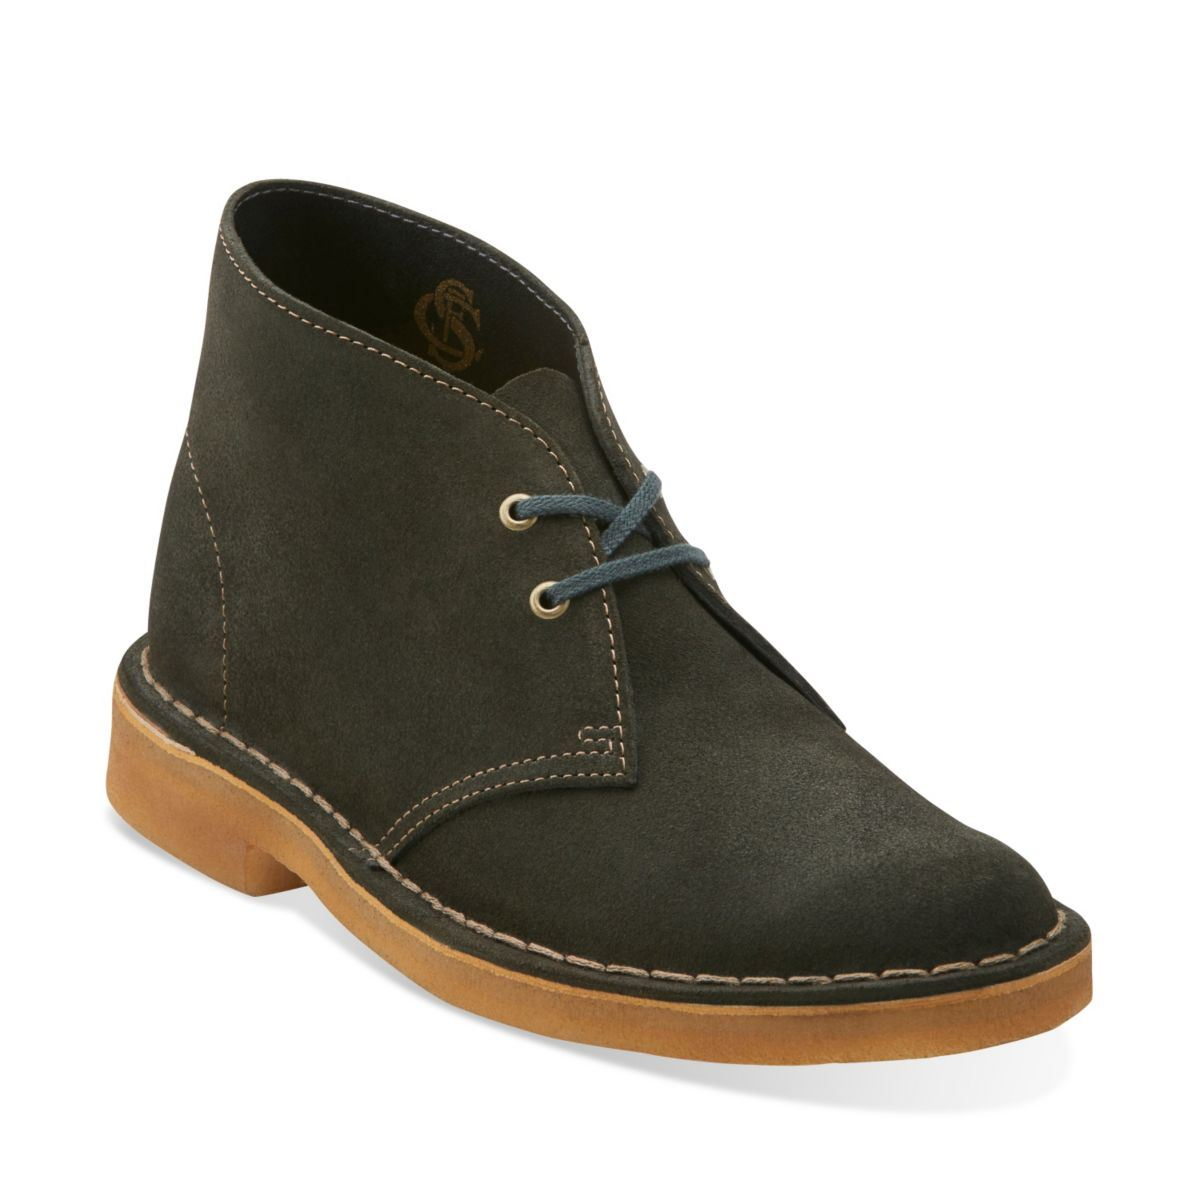 Wonderful Clarks Desert Boot  Women39s